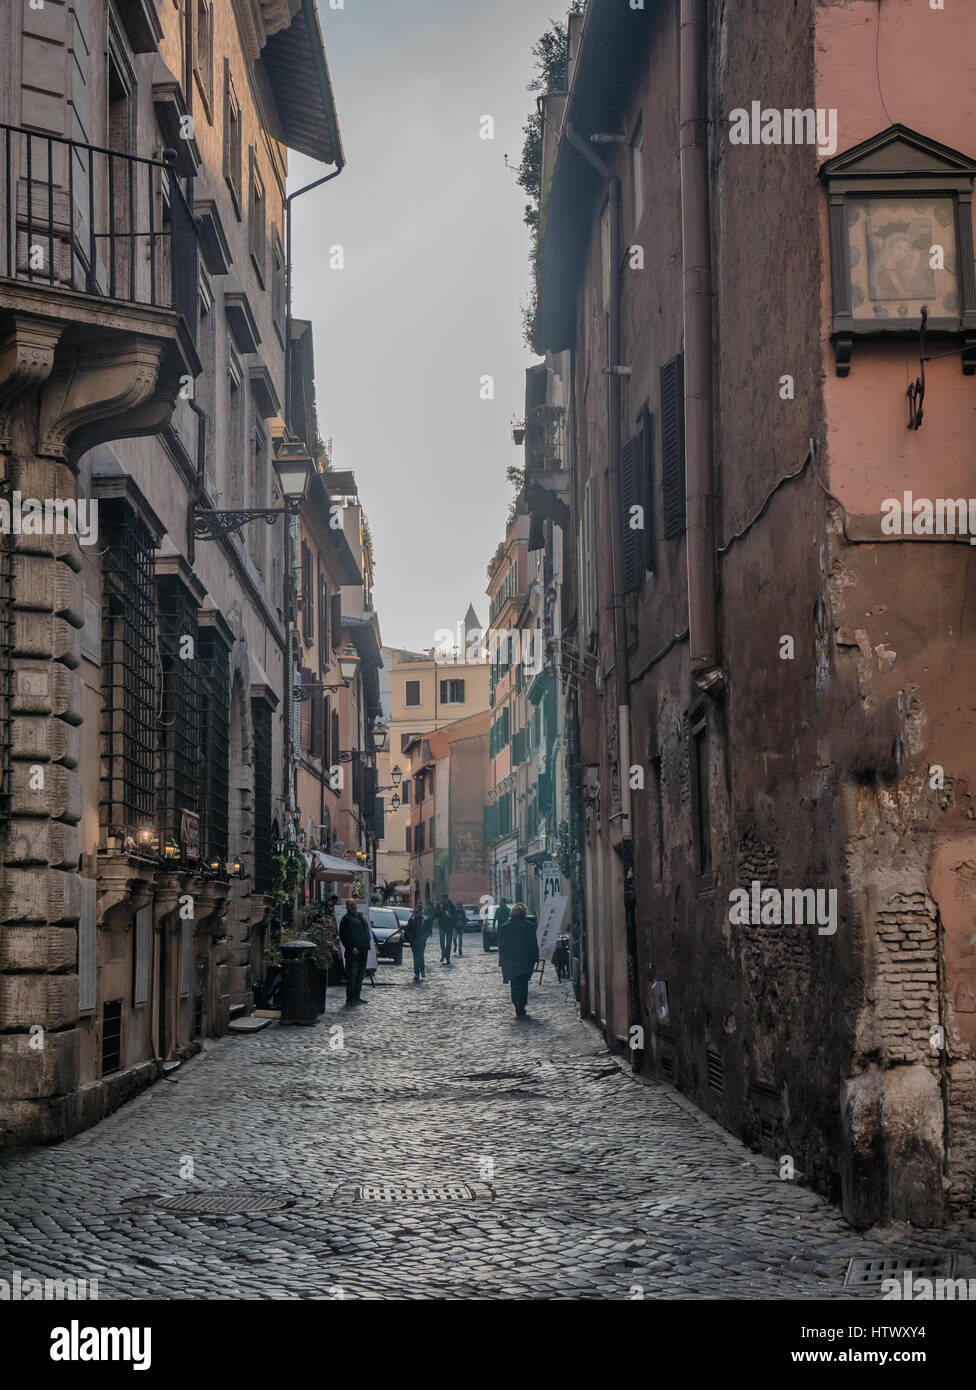 Narrow streets in Rome with restaurants - Stock Image